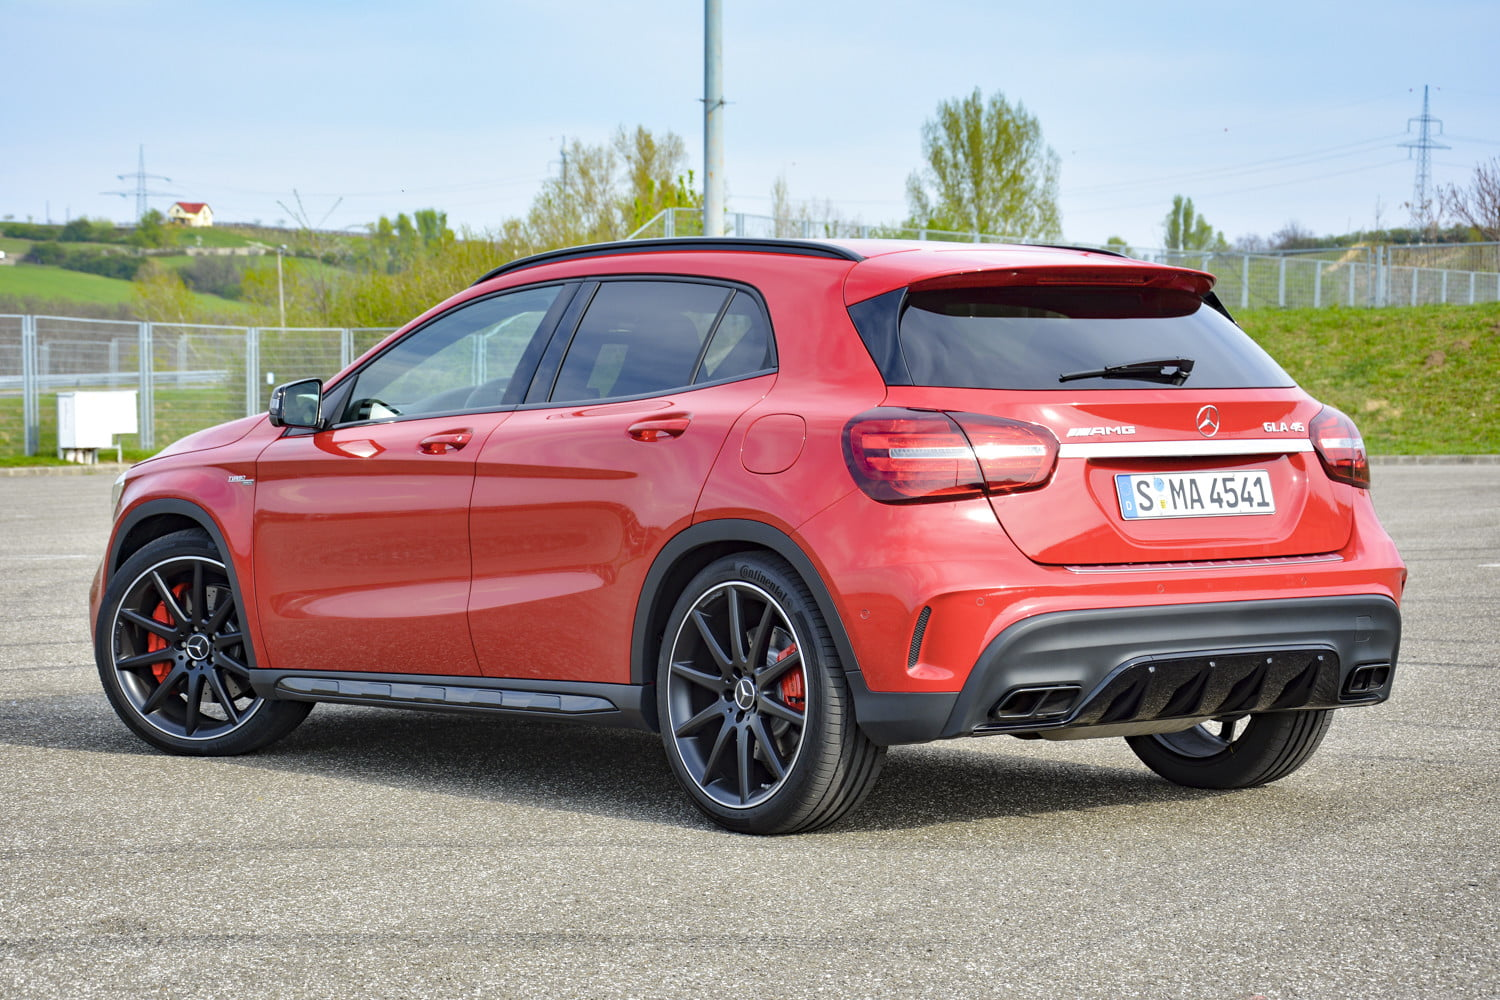 2018 mercedes amg gla45 first drive impressions specs 520